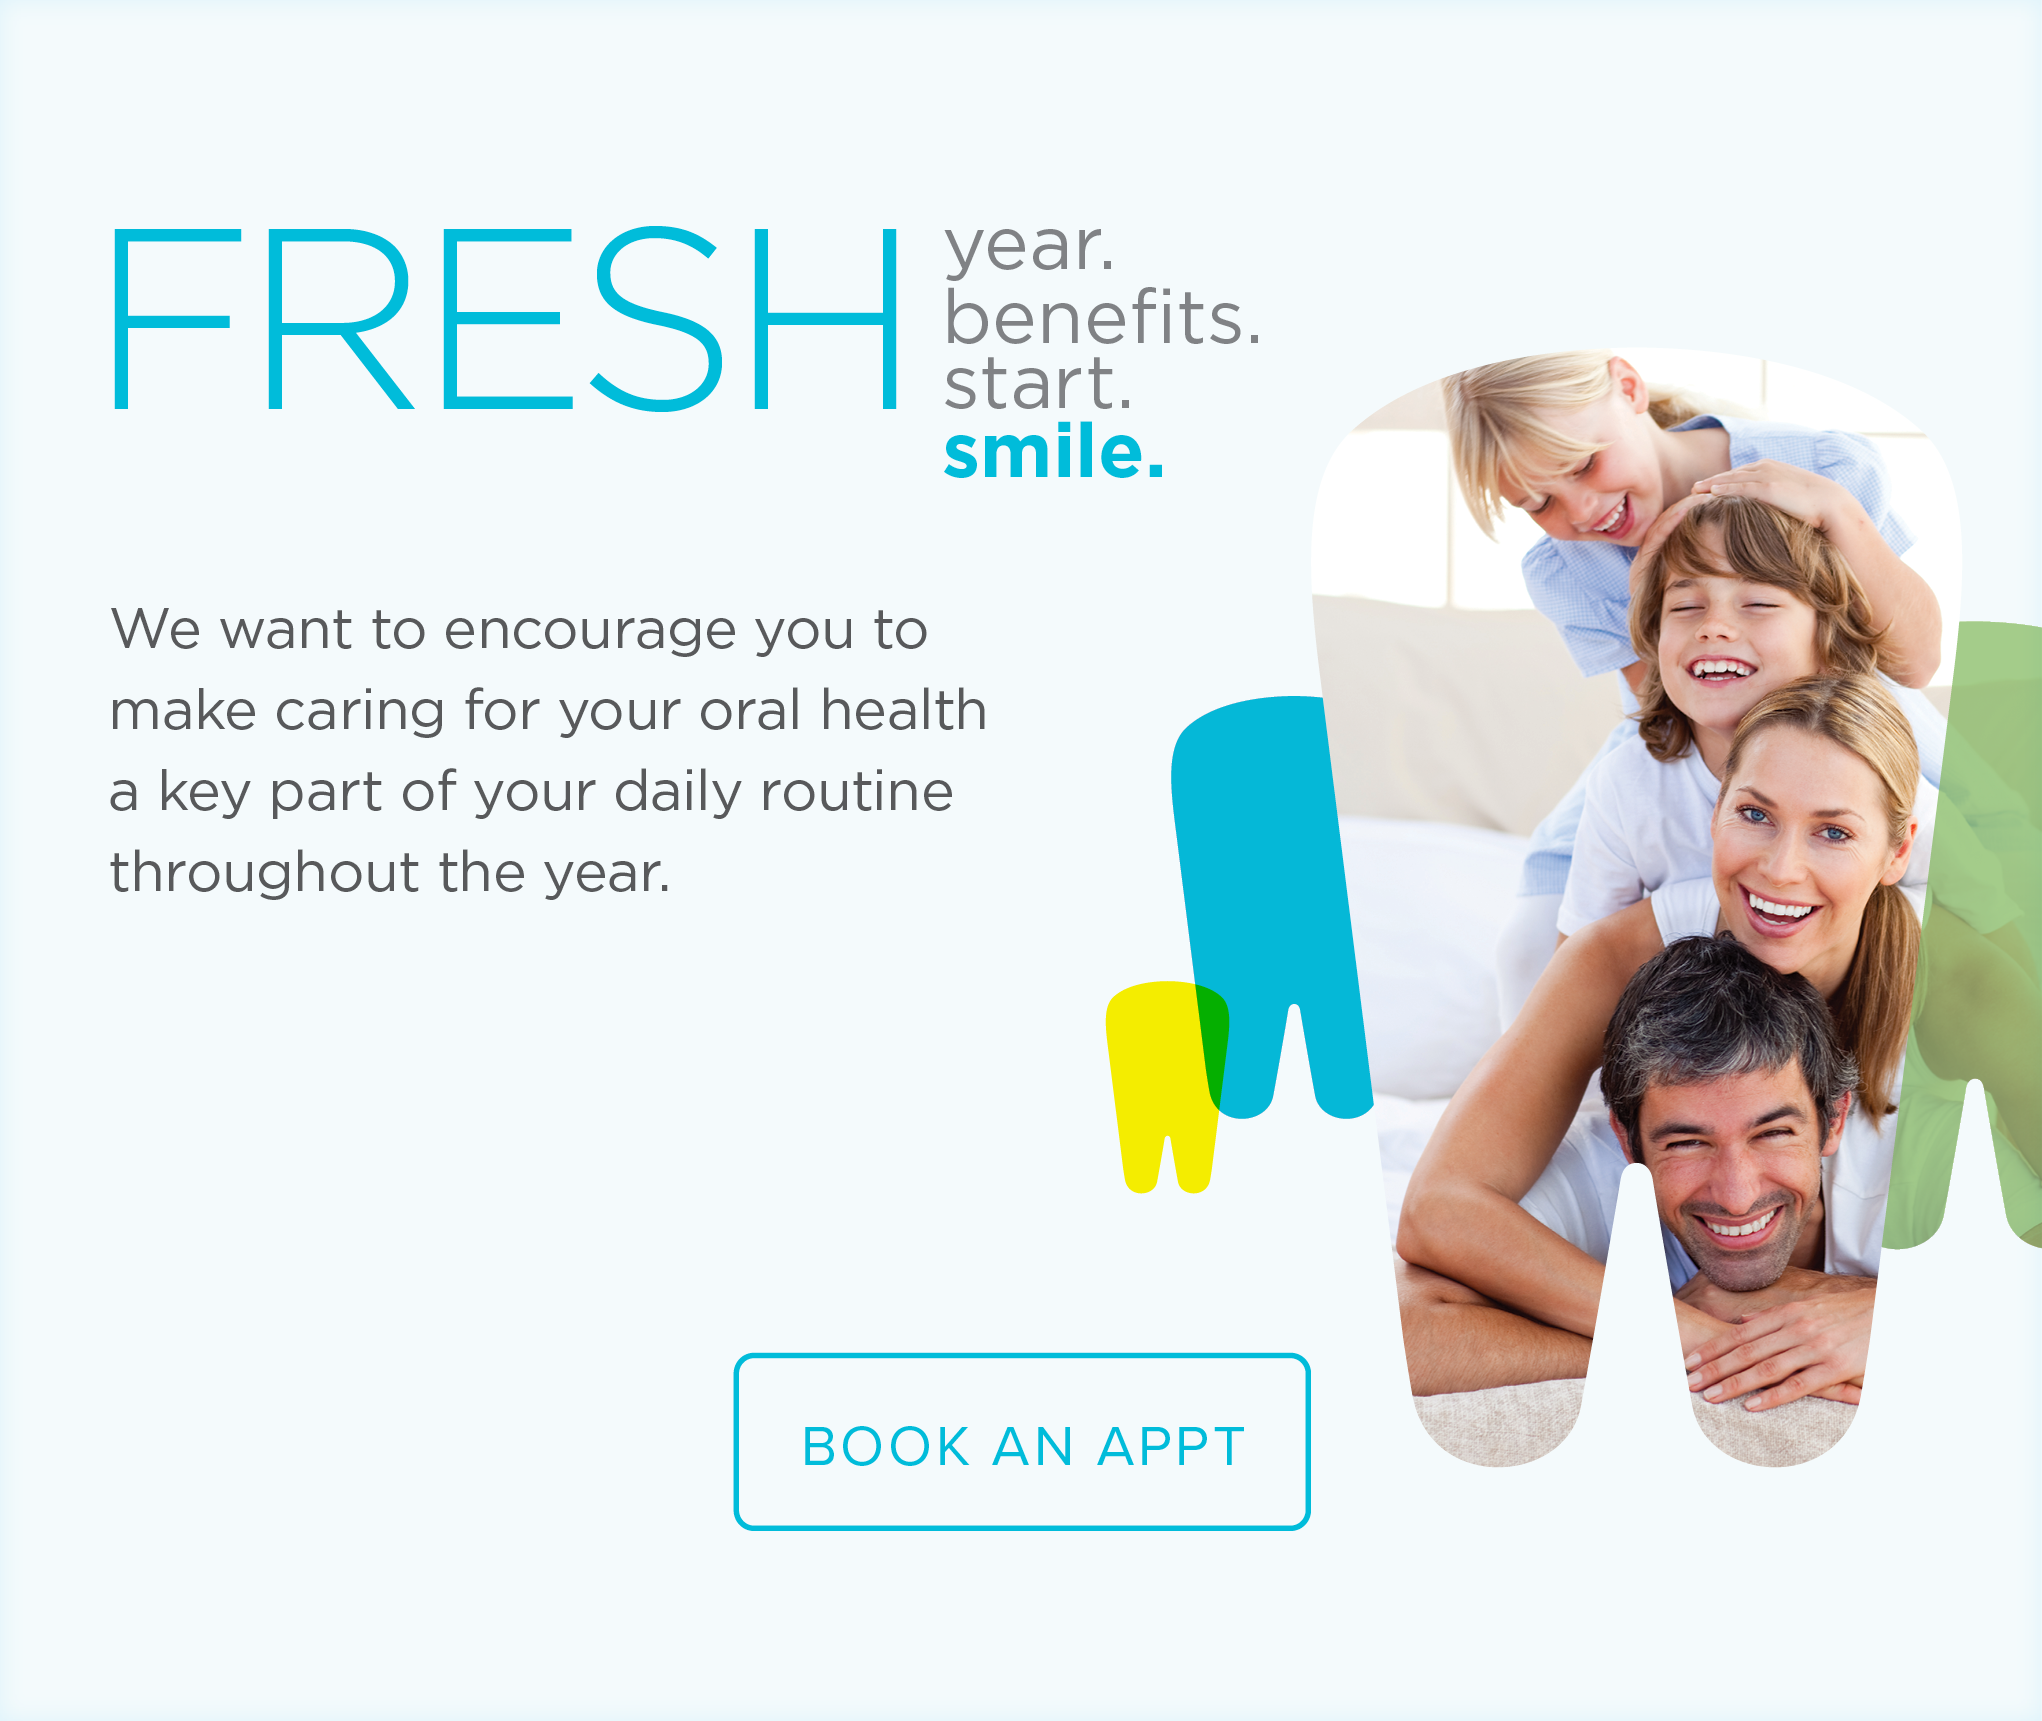 Arvada Smiles  Dentistry - Make the Most of Your Benefits